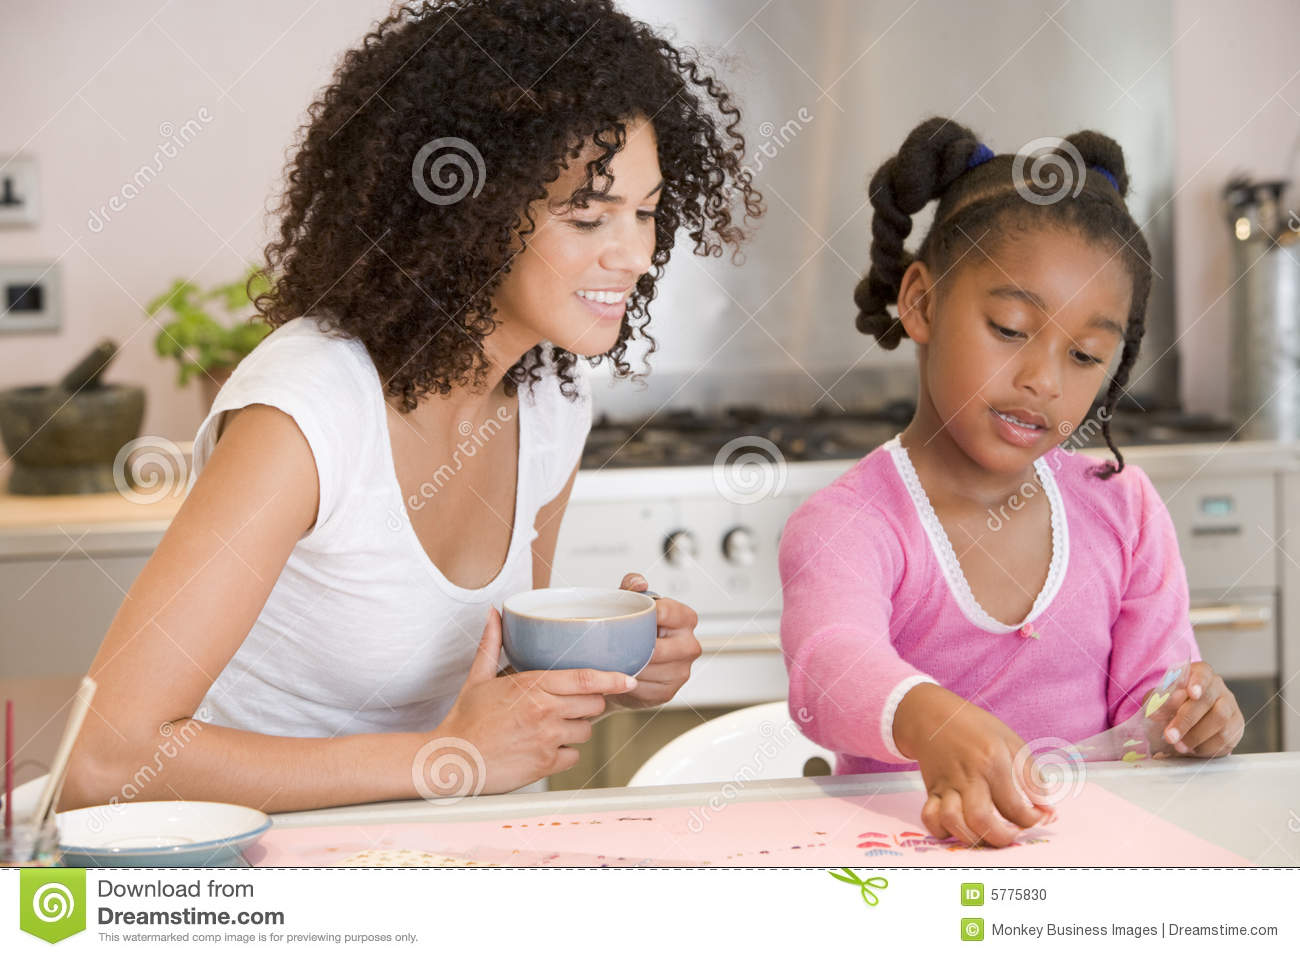 Download Woman And Young Girl In Kitchen With Art Project S Stock Photo - Image of length, horizontal: 5775830